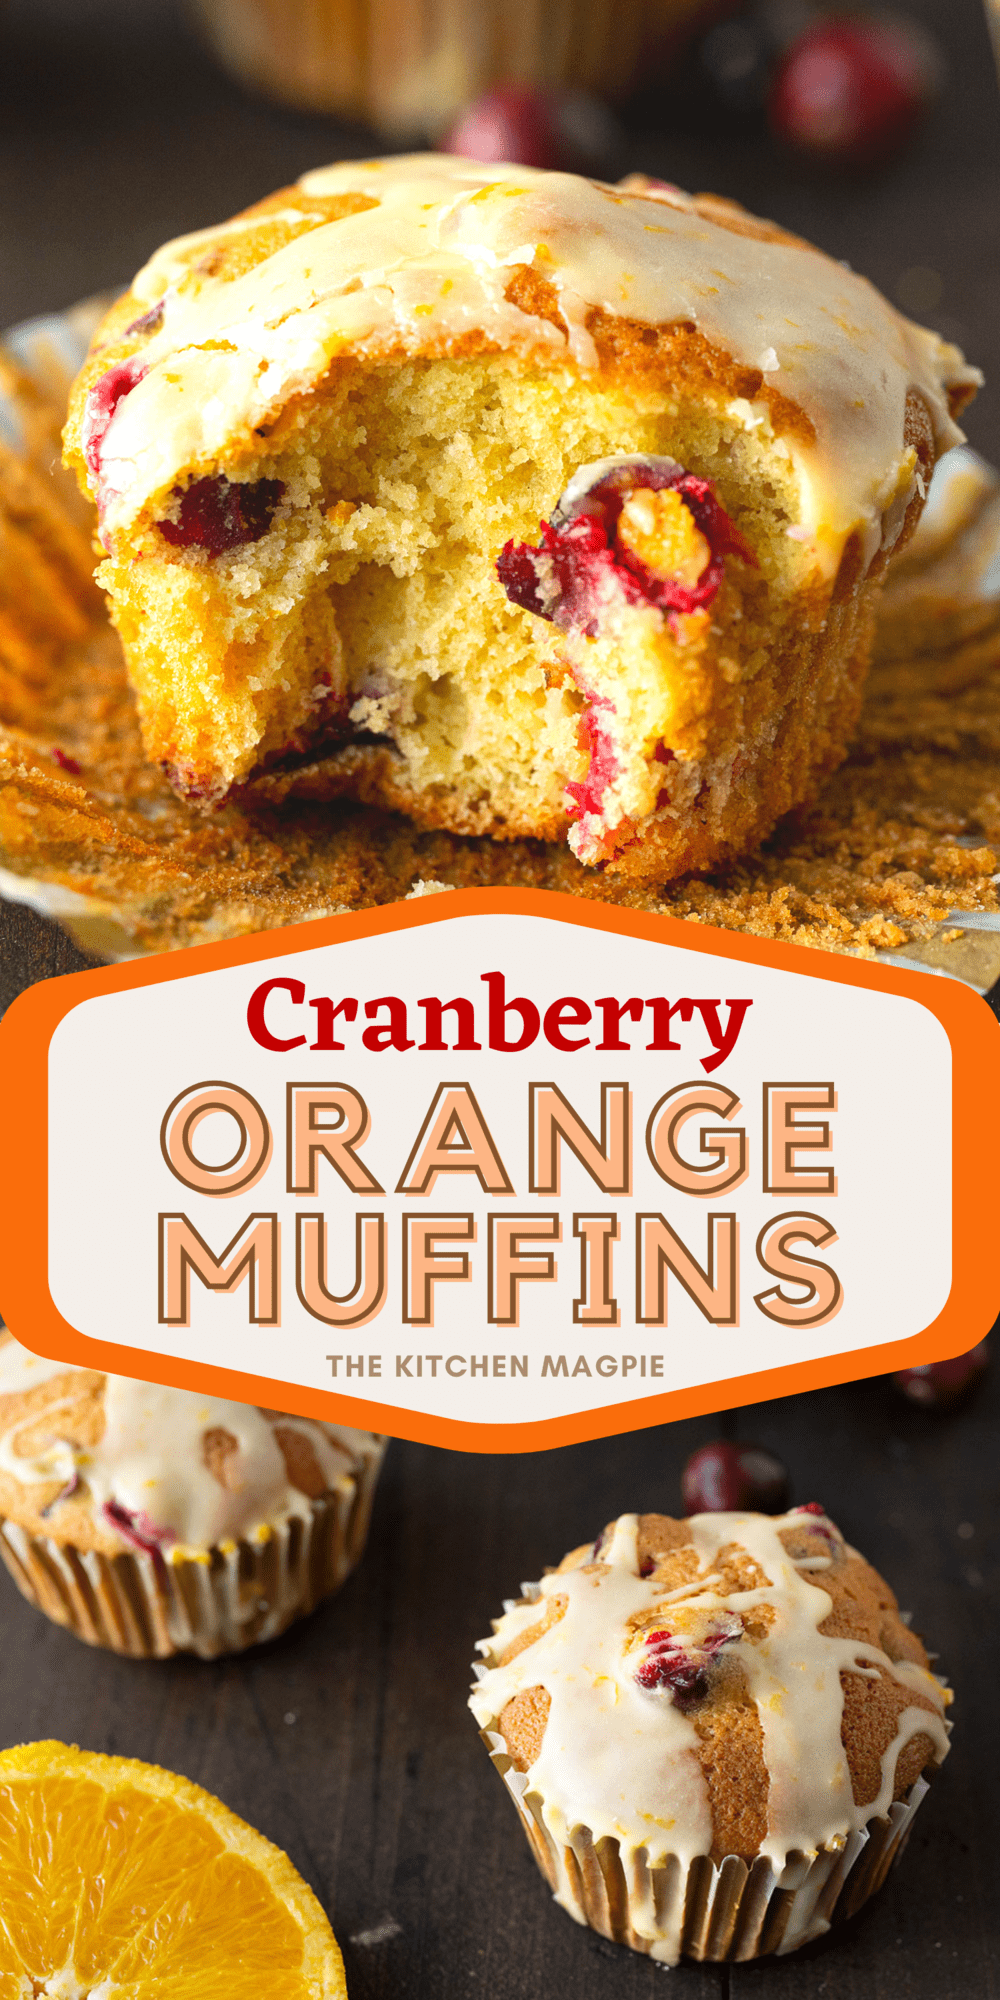 These cranberry orange muffins are loaded with fresh cranberries, fresh oranges and are the perfect taste of the season!